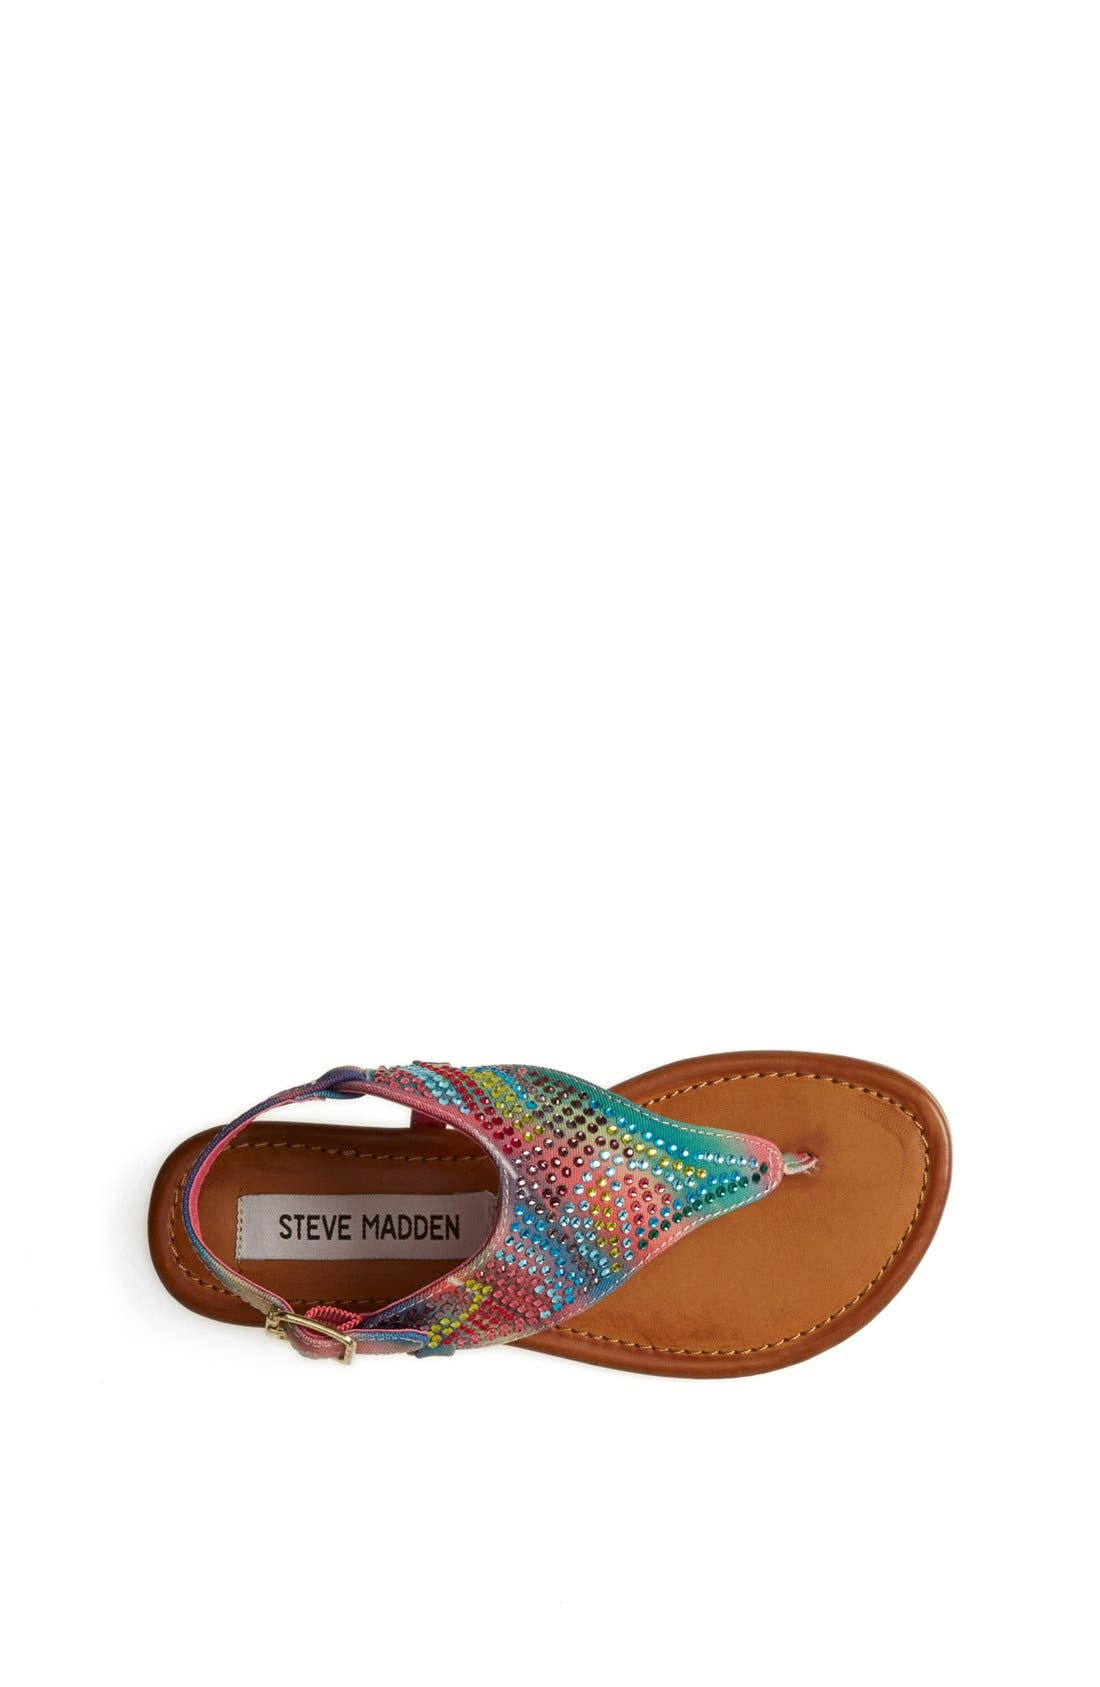 Alternate Image 3  - Steve Madden 'Bizee' Sandal (Toddler, Little Kid & Big Kid)